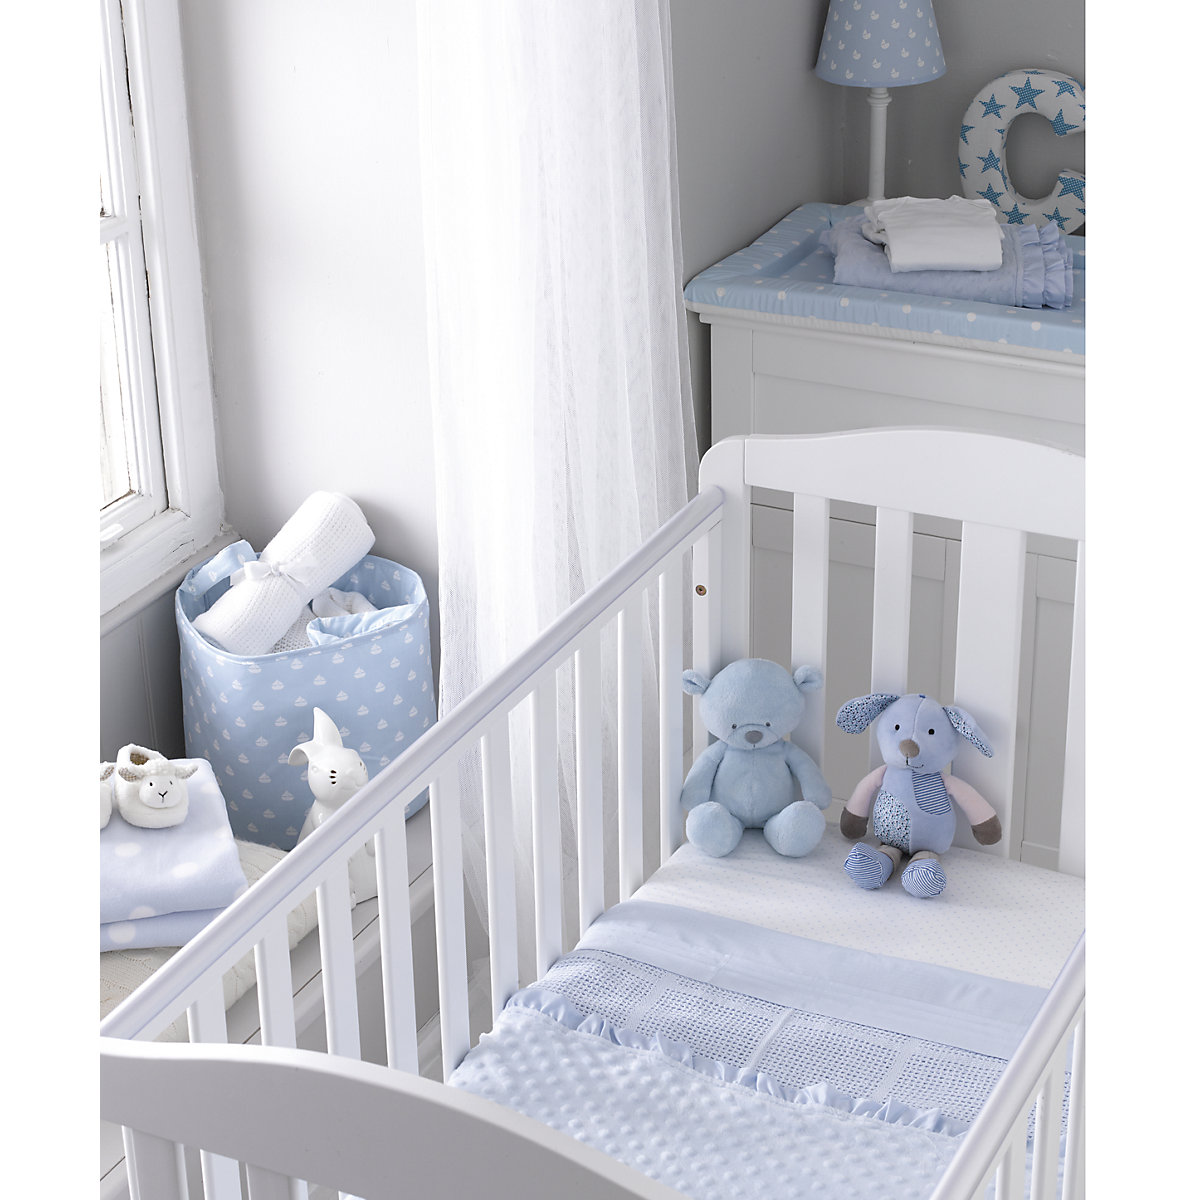 Baby bed hs code - Mothercare Baby Bedding Jersey Fitted Sheets 2 Pack